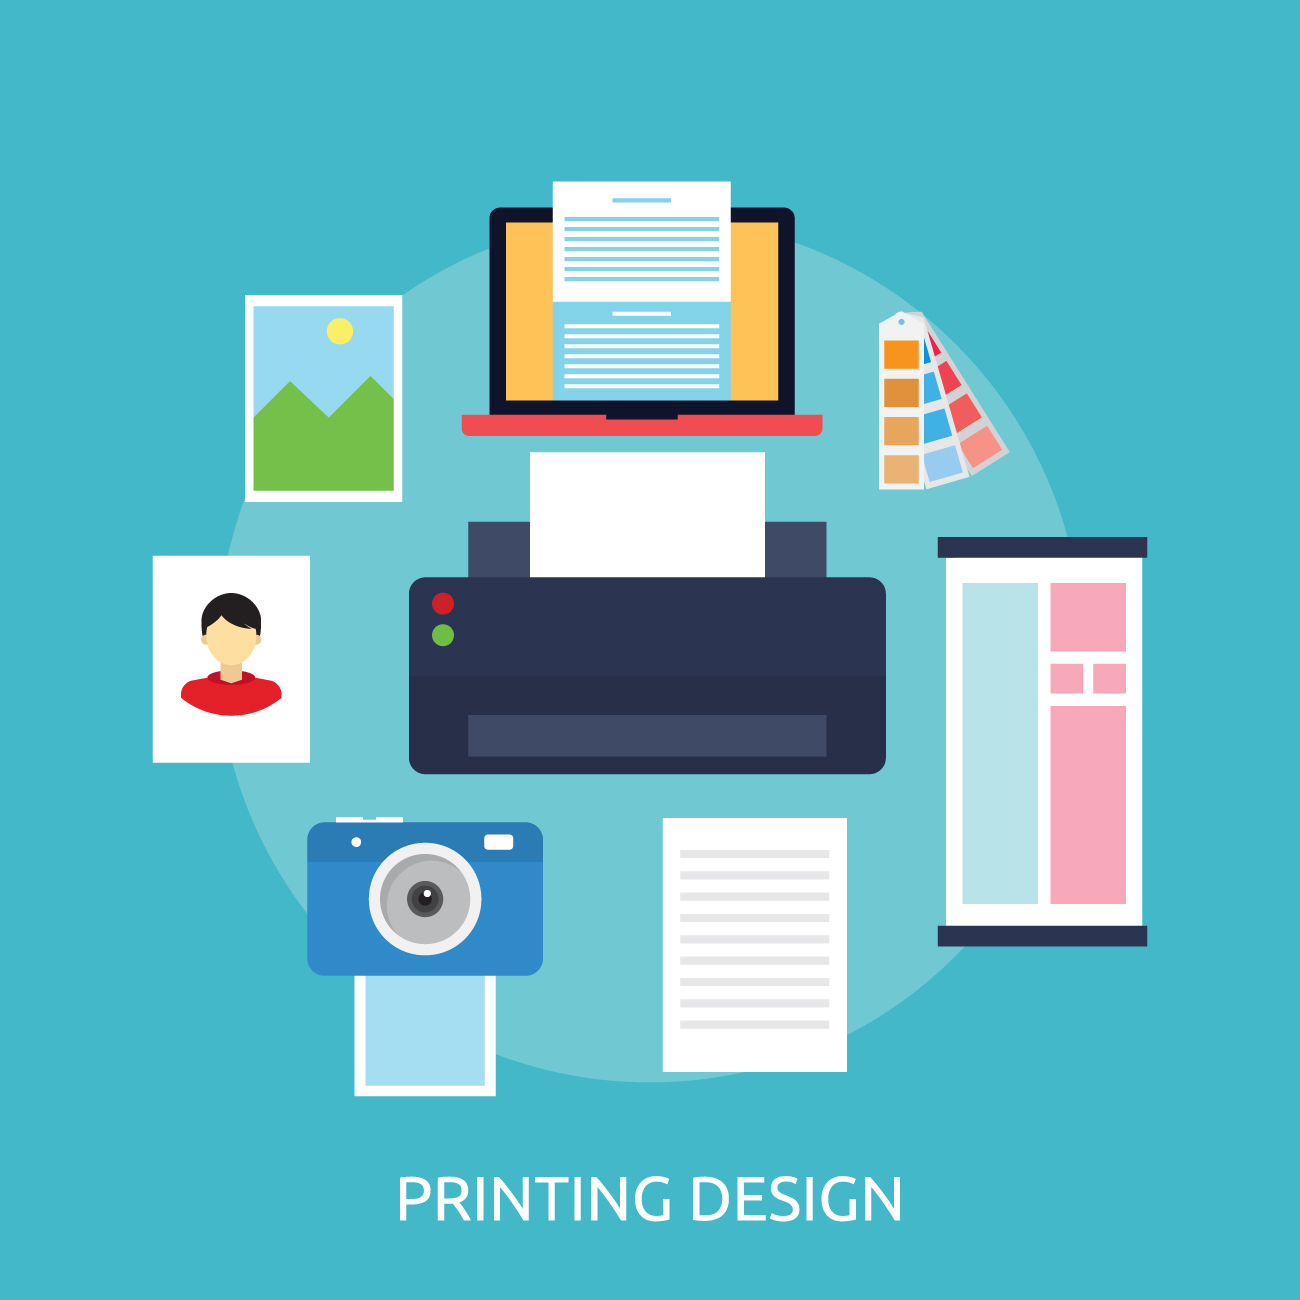 Finding a reliable print designer